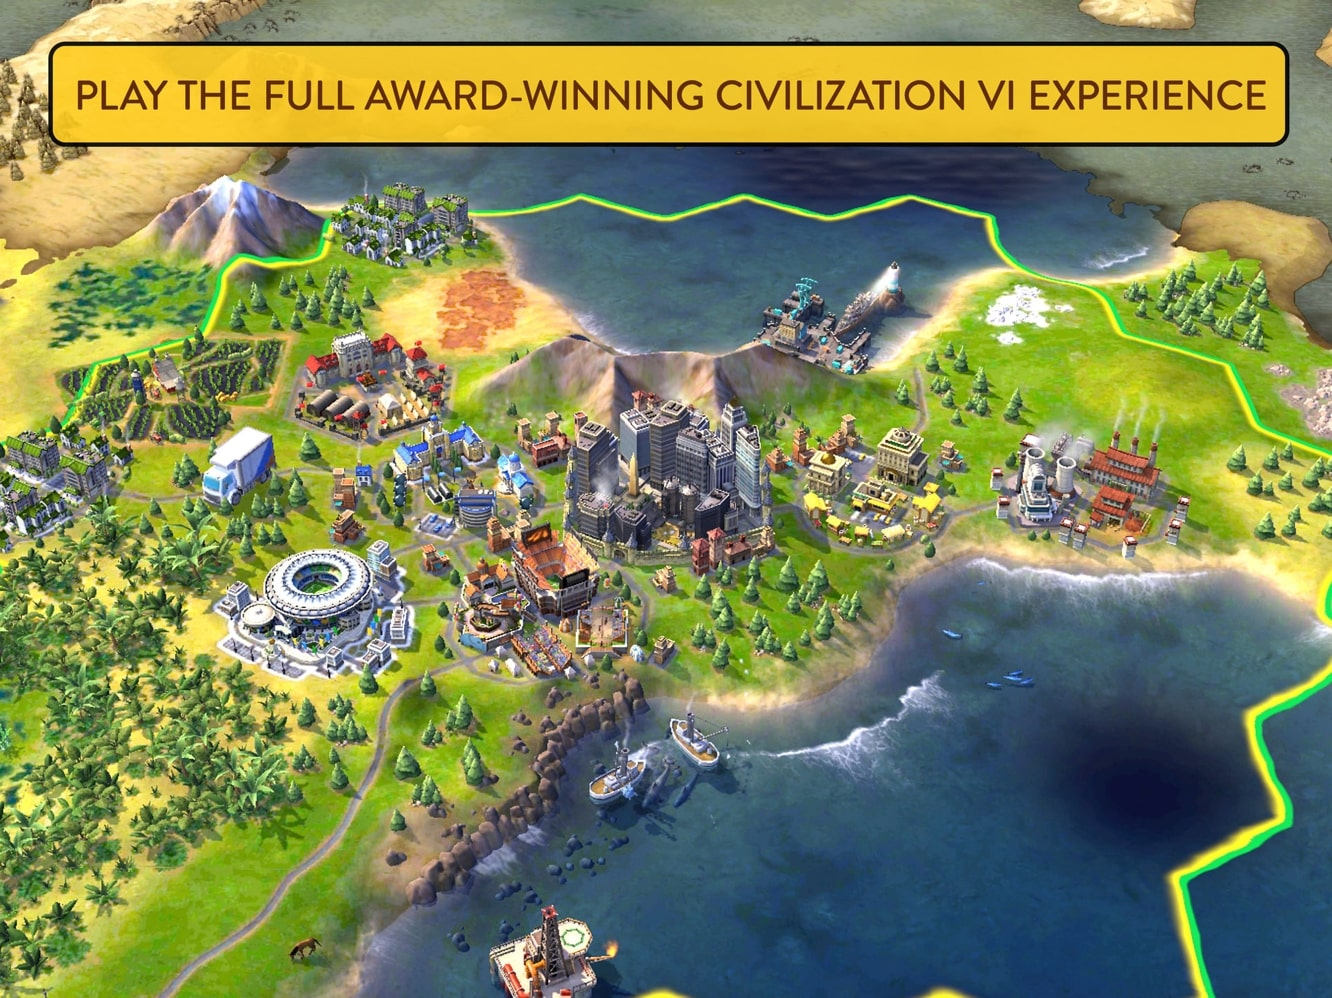 Sid Meier's Civilization VI comes to the iPhone